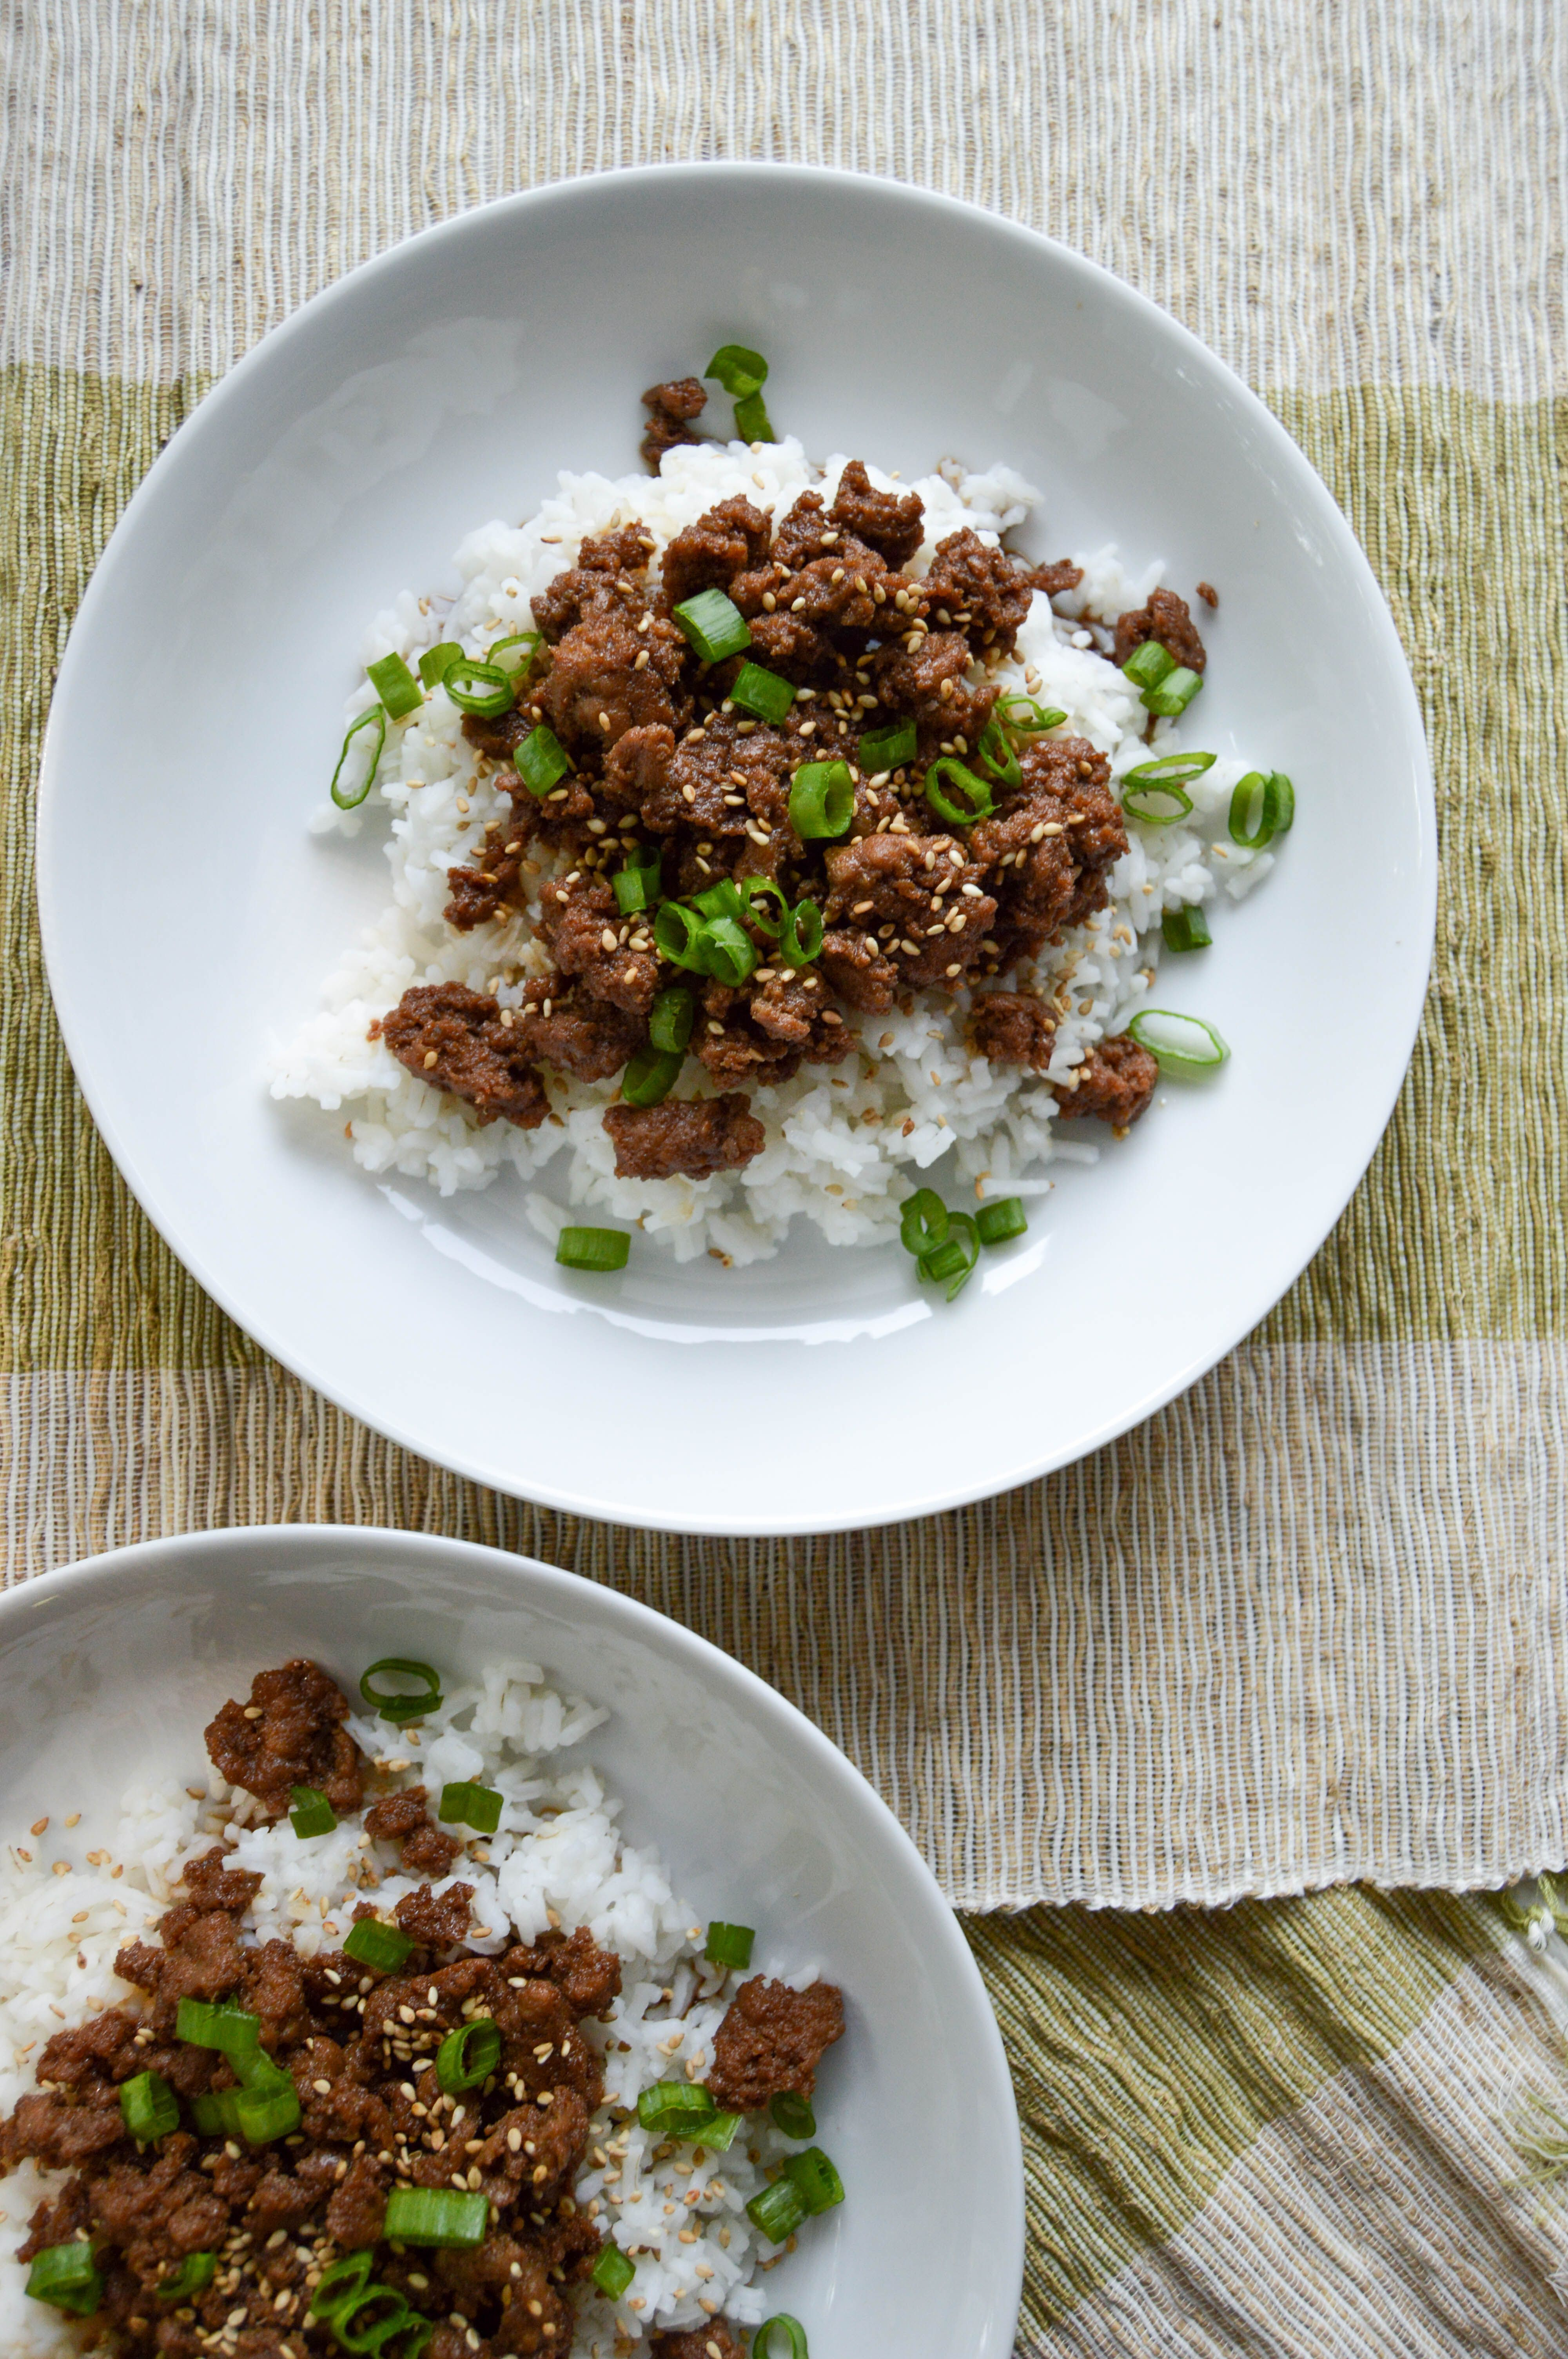 Korean Ground Turkey Bowls | My New Go-To Health(ier) Recipe